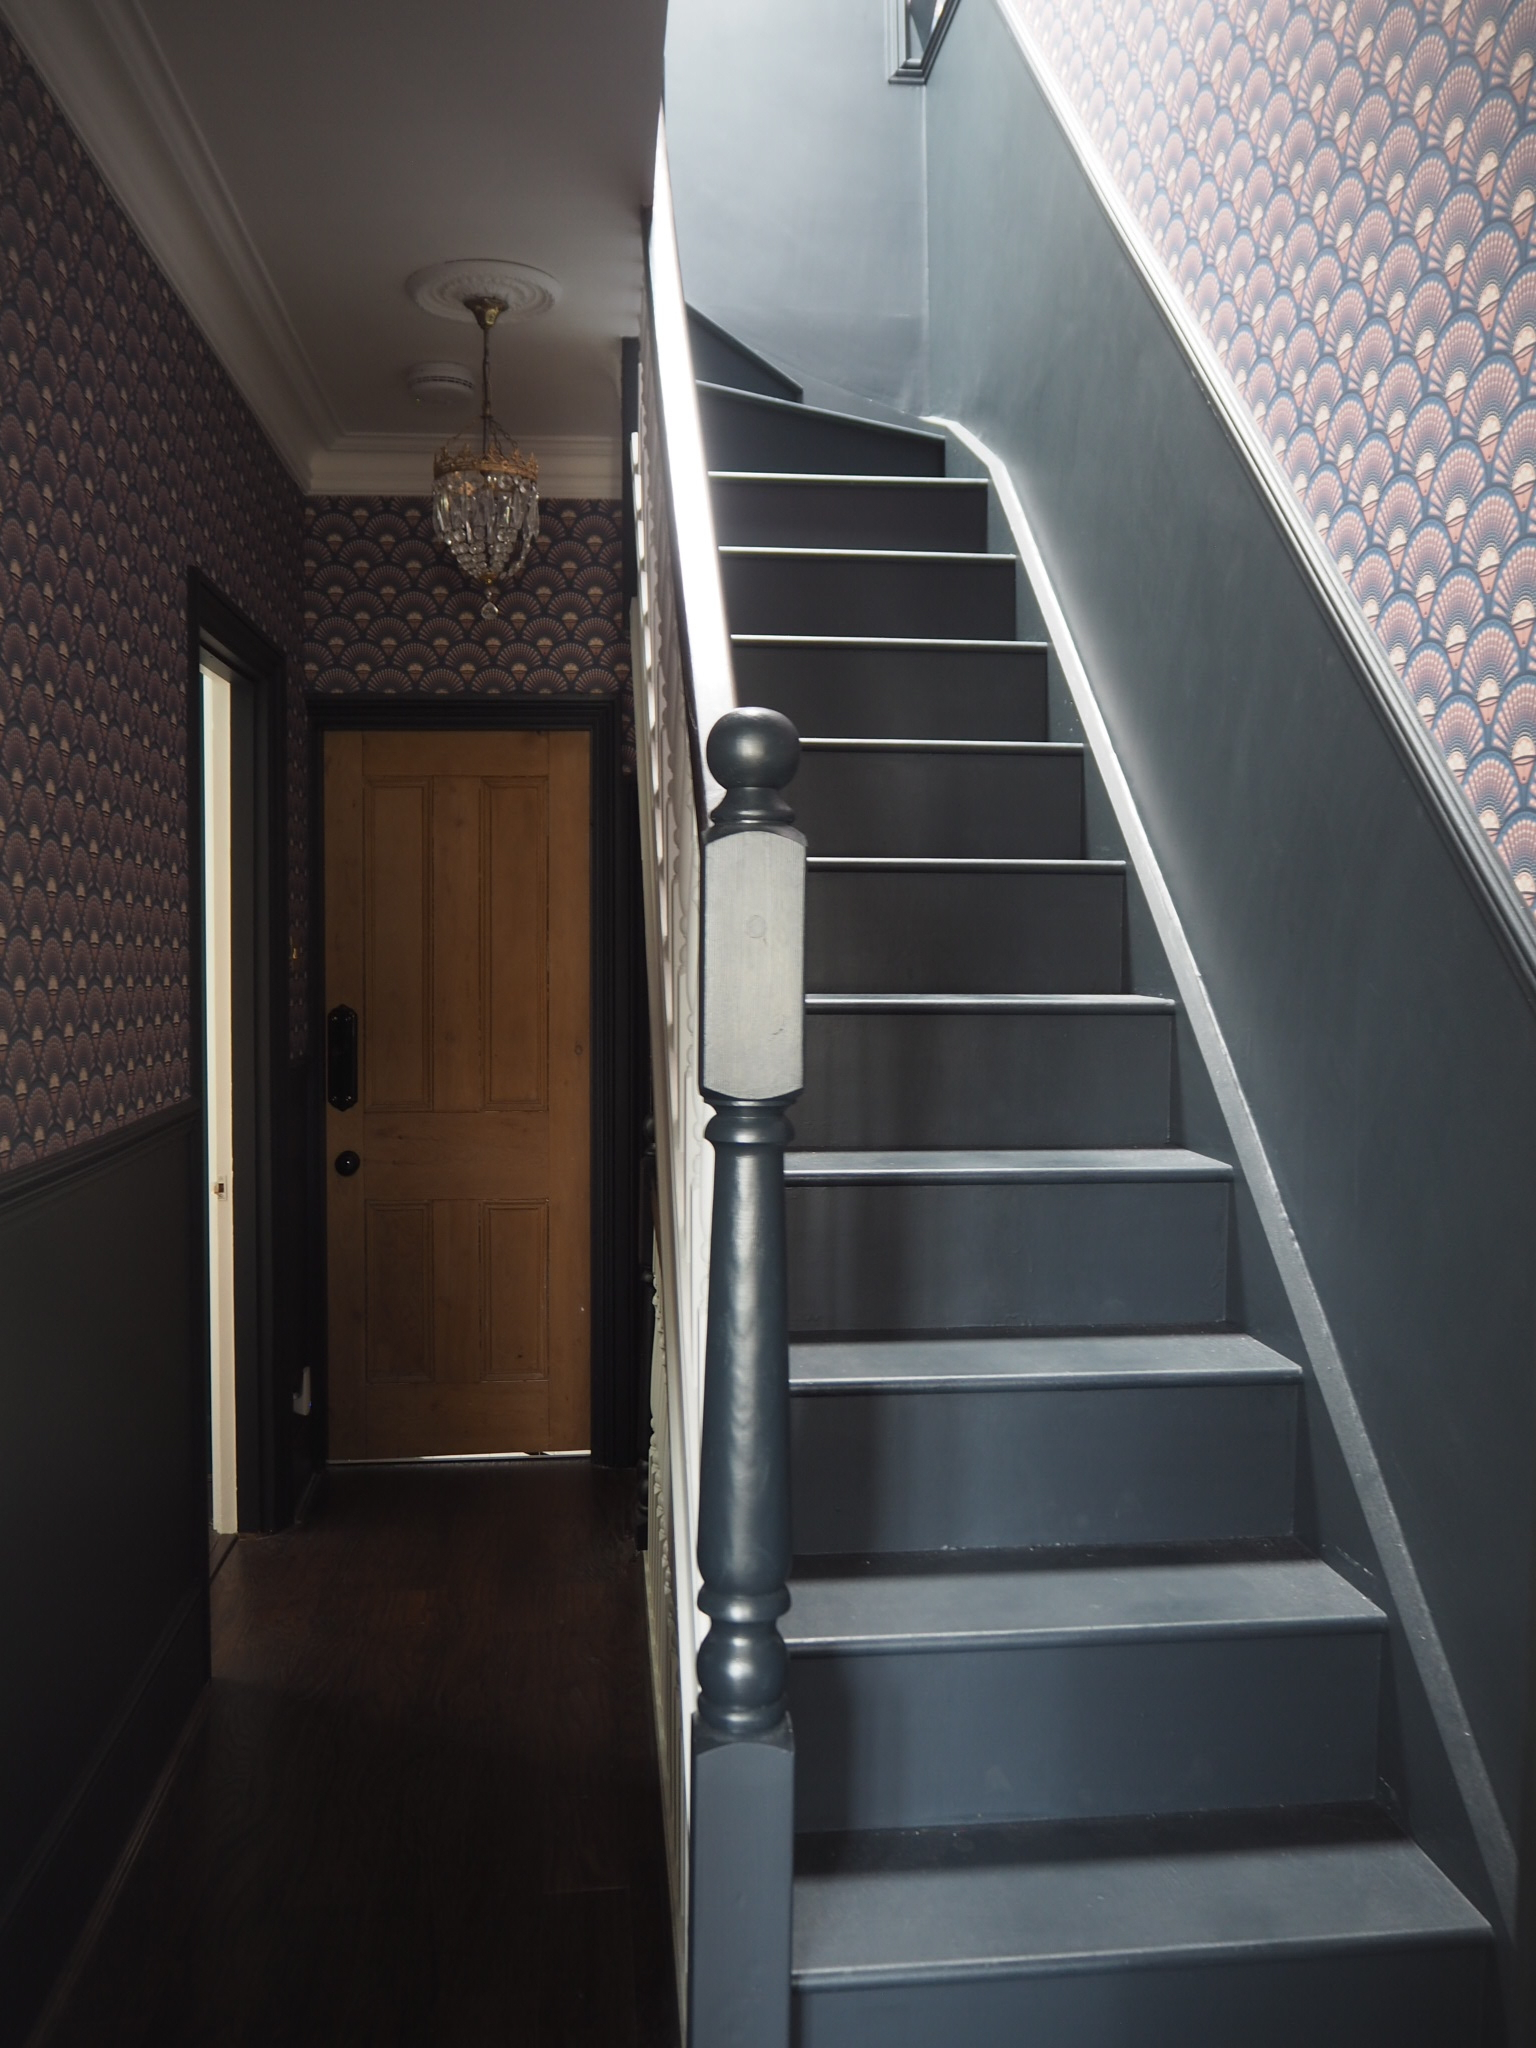 Hallway with deco martini wallpaper and dado rail